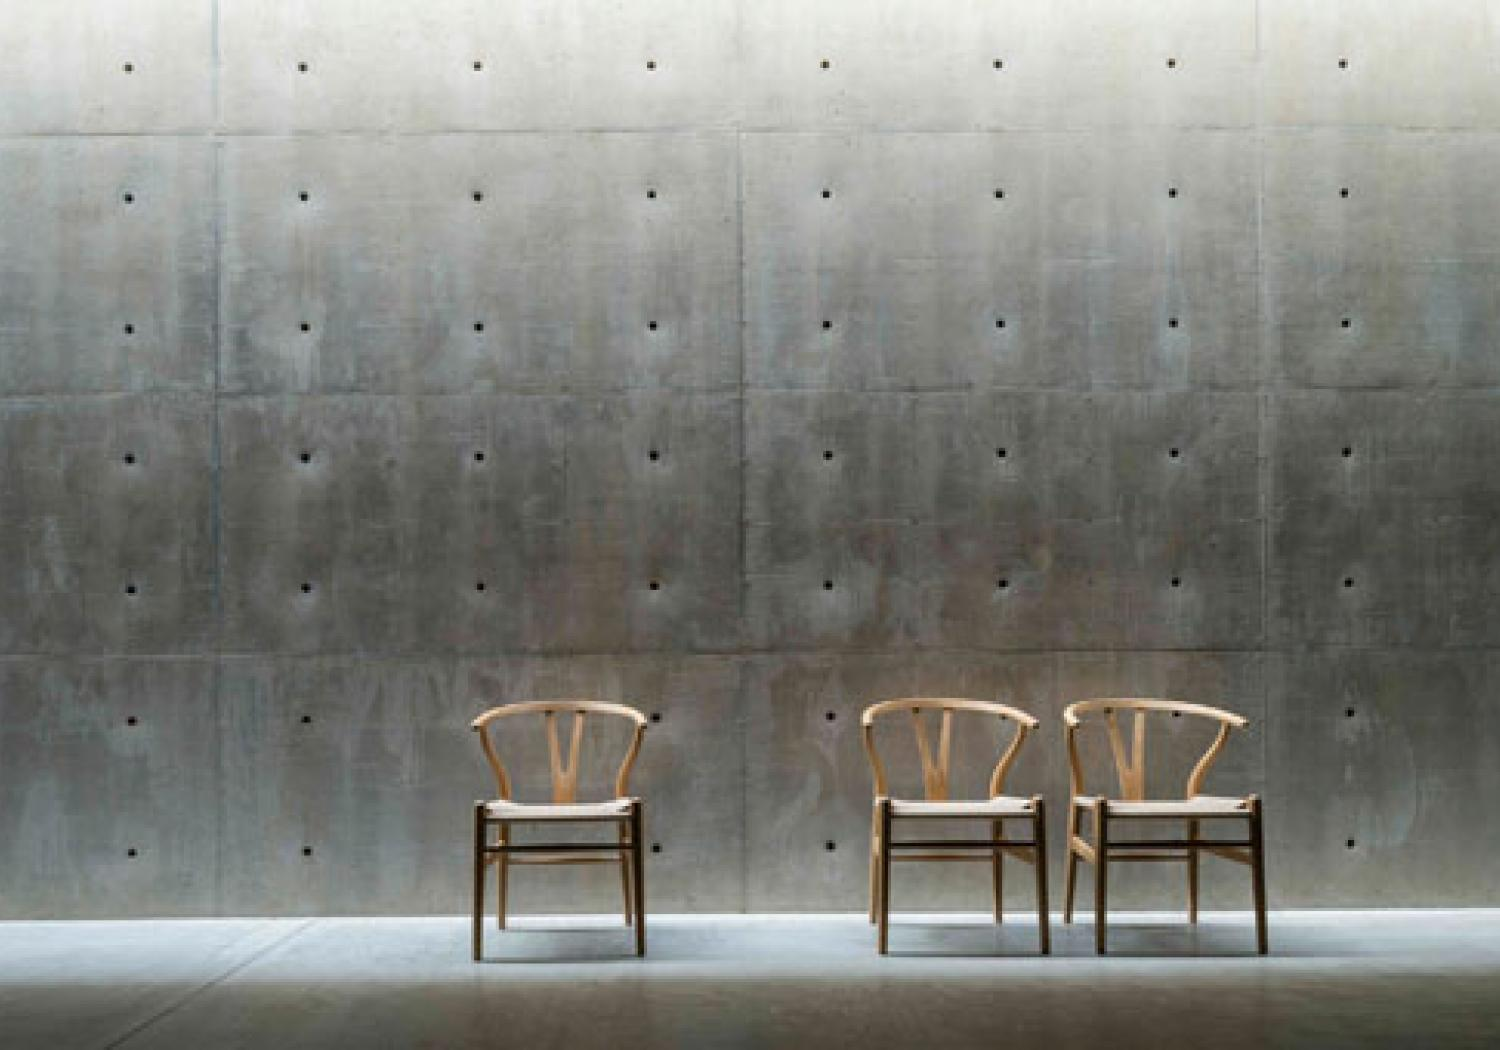 Buy 6 Wishbone chairs and pay for 5 - Hans J. Wegner